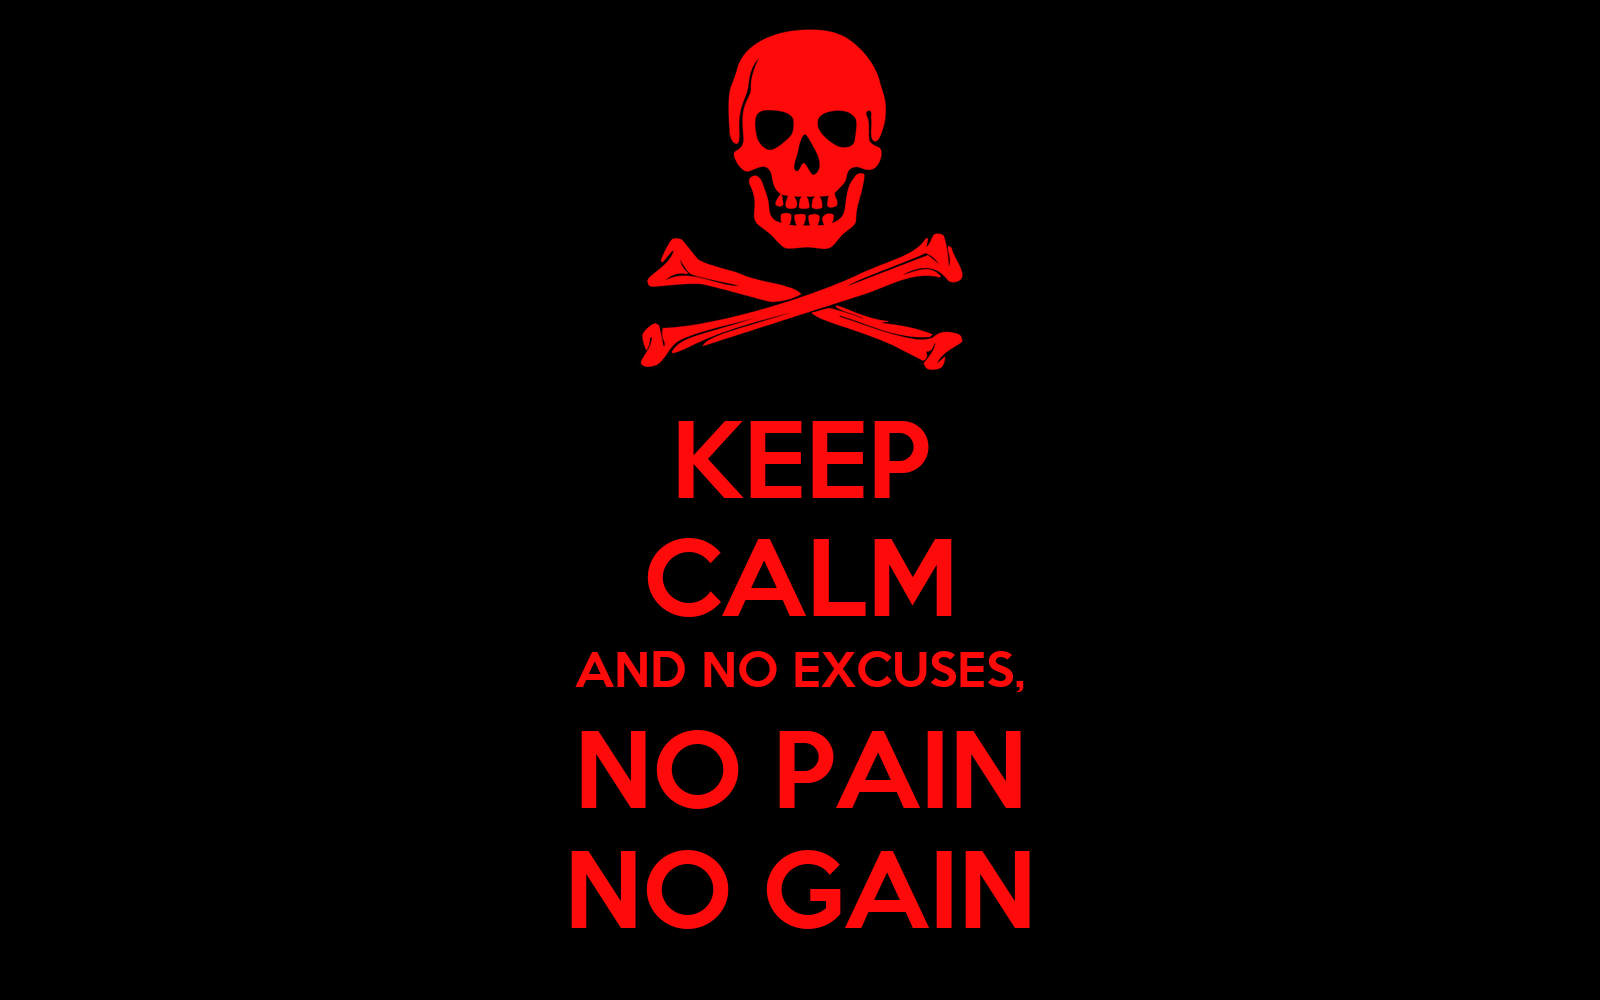 no pain gain wallpapers - photo #10